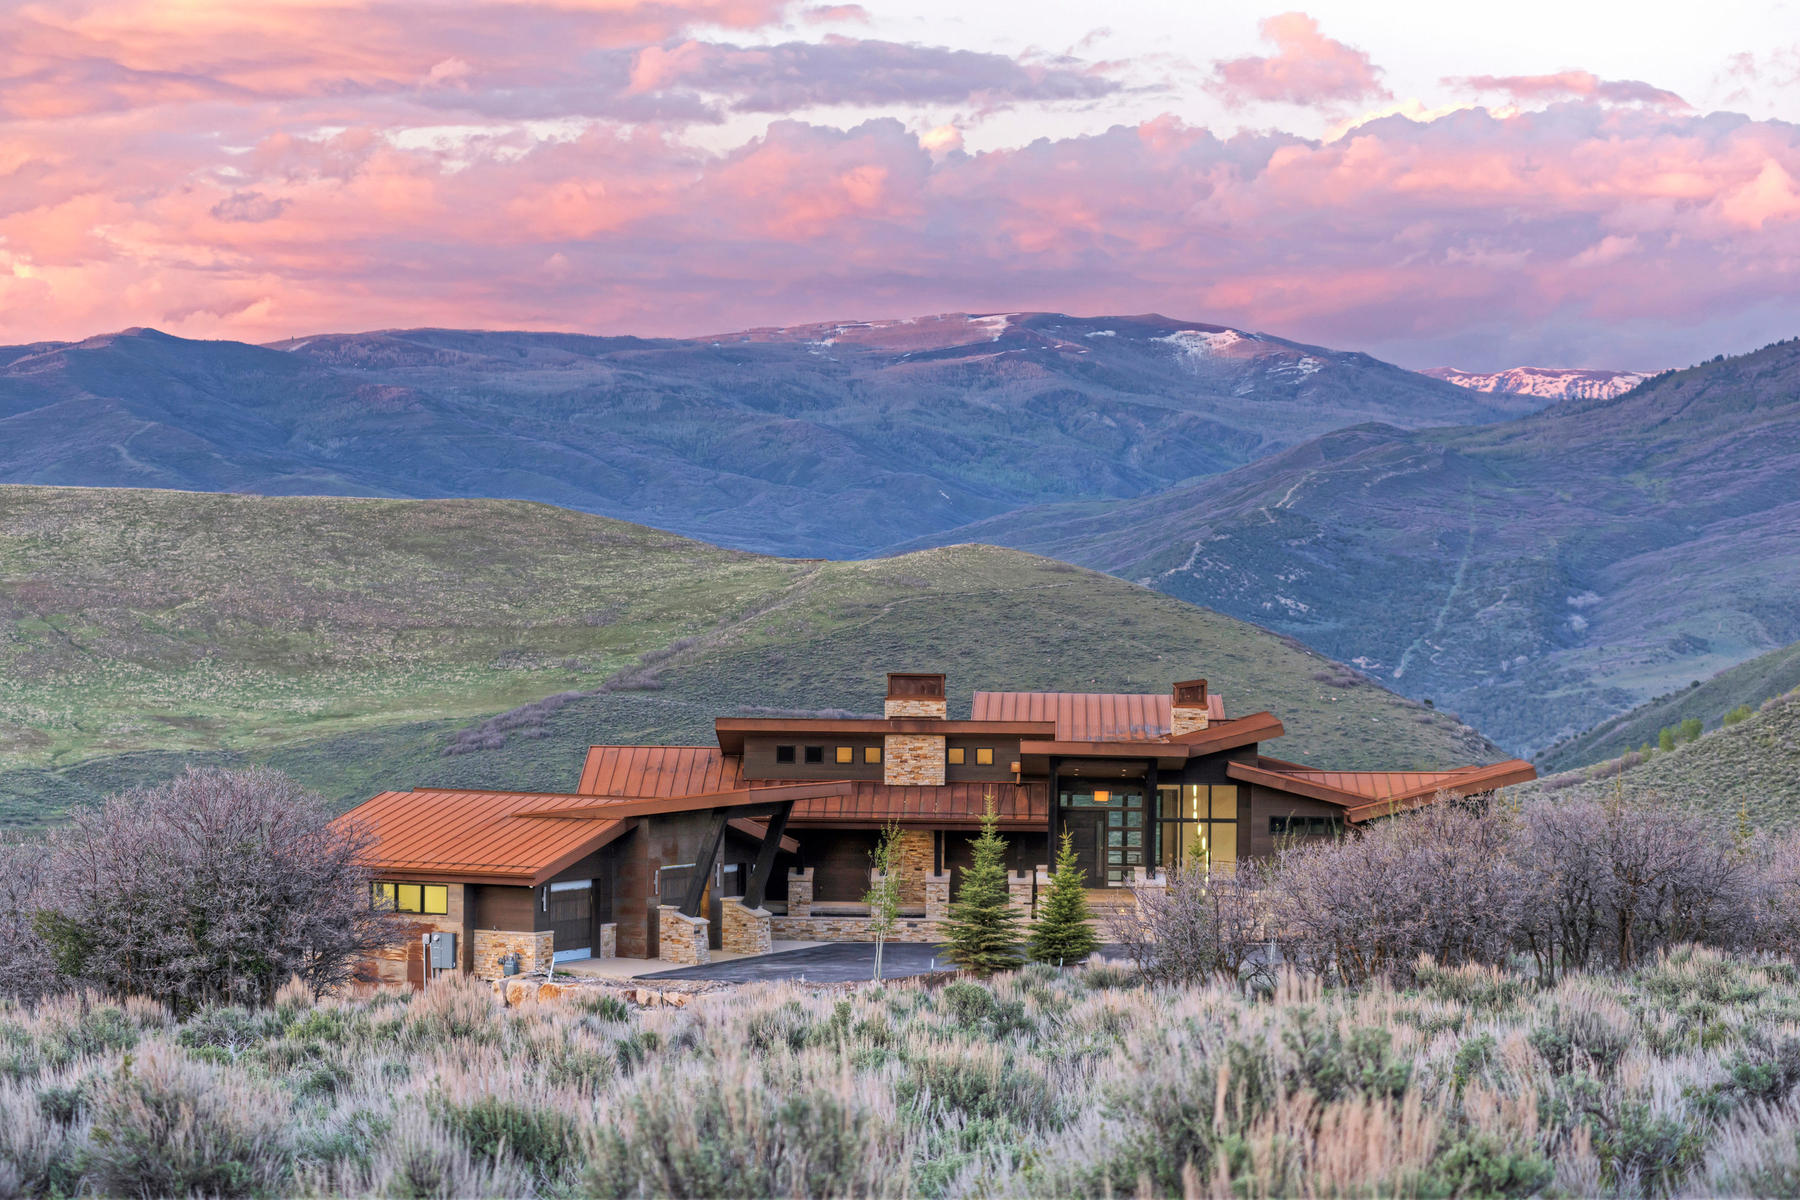 Maison unifamiliale pour l Vente à Spectacular New Construction Home with Panoramic Views protected by Open Space! 3931 Aspen Camp Loop Park City, Utah, 84098 États-Unis